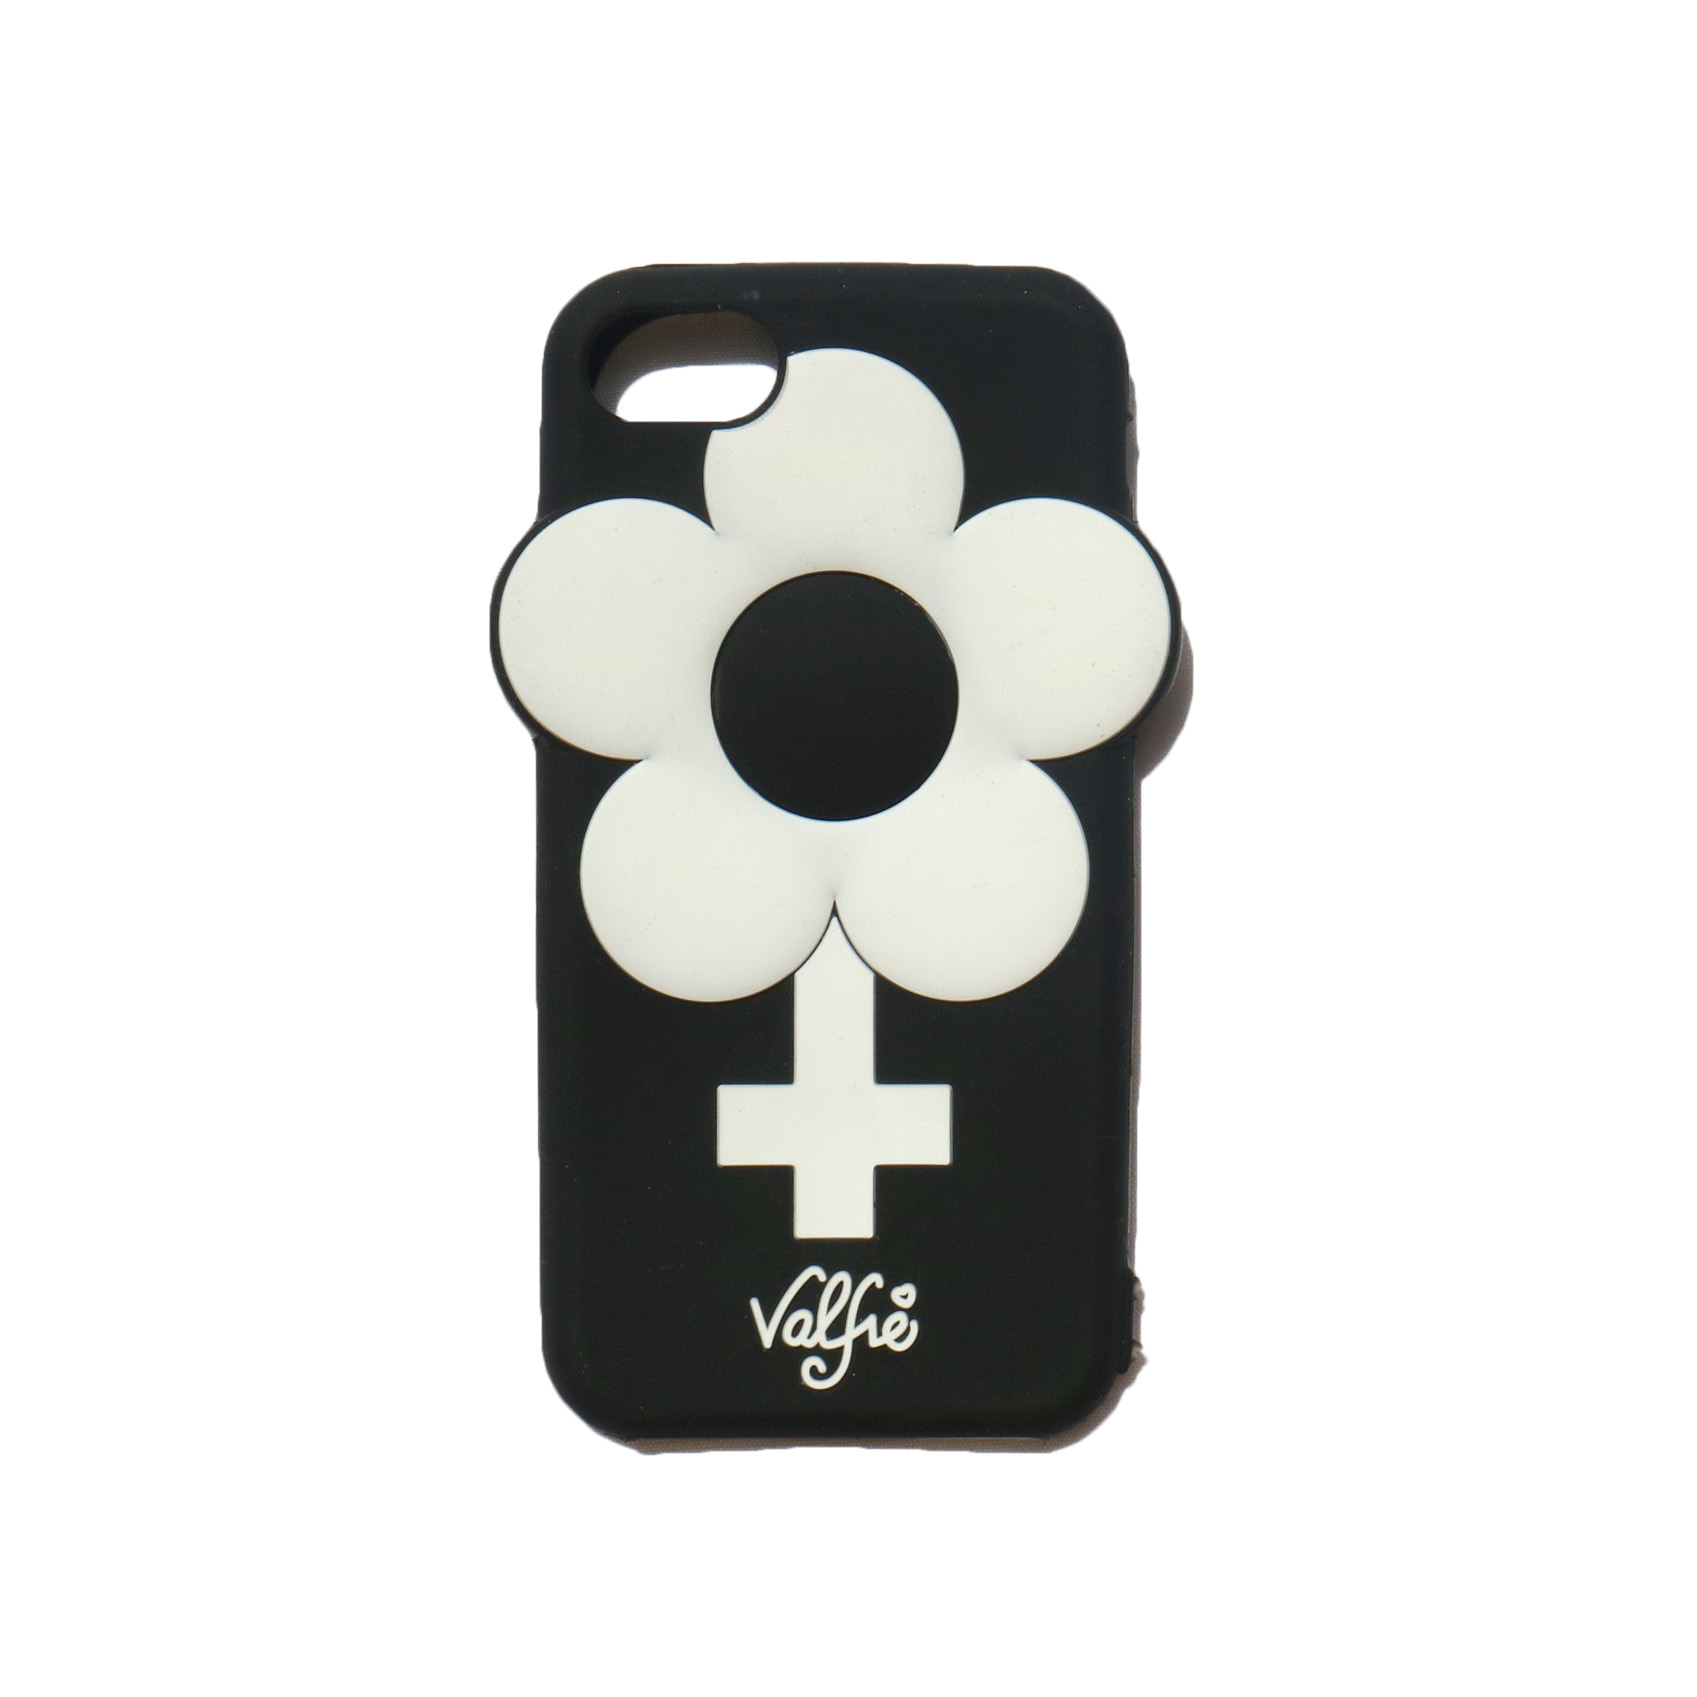 the latest 5f7a1 6a8ae Valfre Flower Power